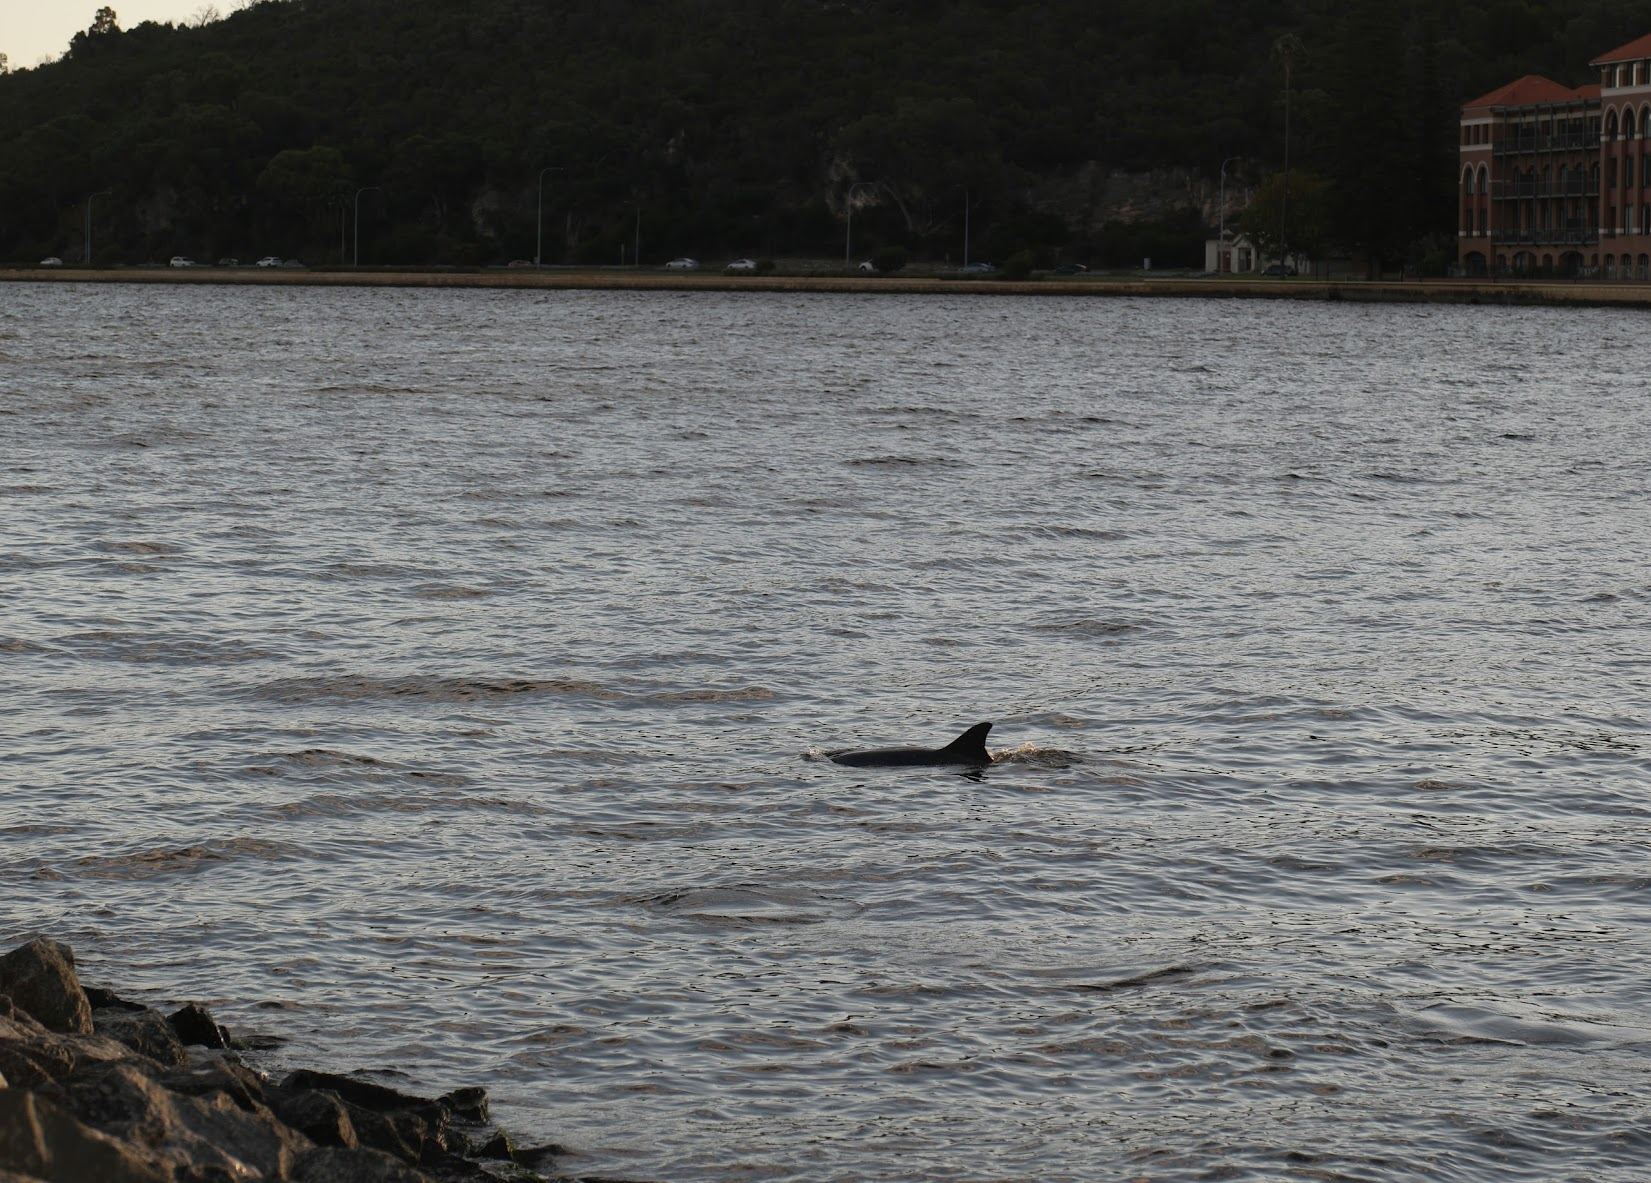 A dolphin surfaces near the Narrows and Old Swan Brewery.